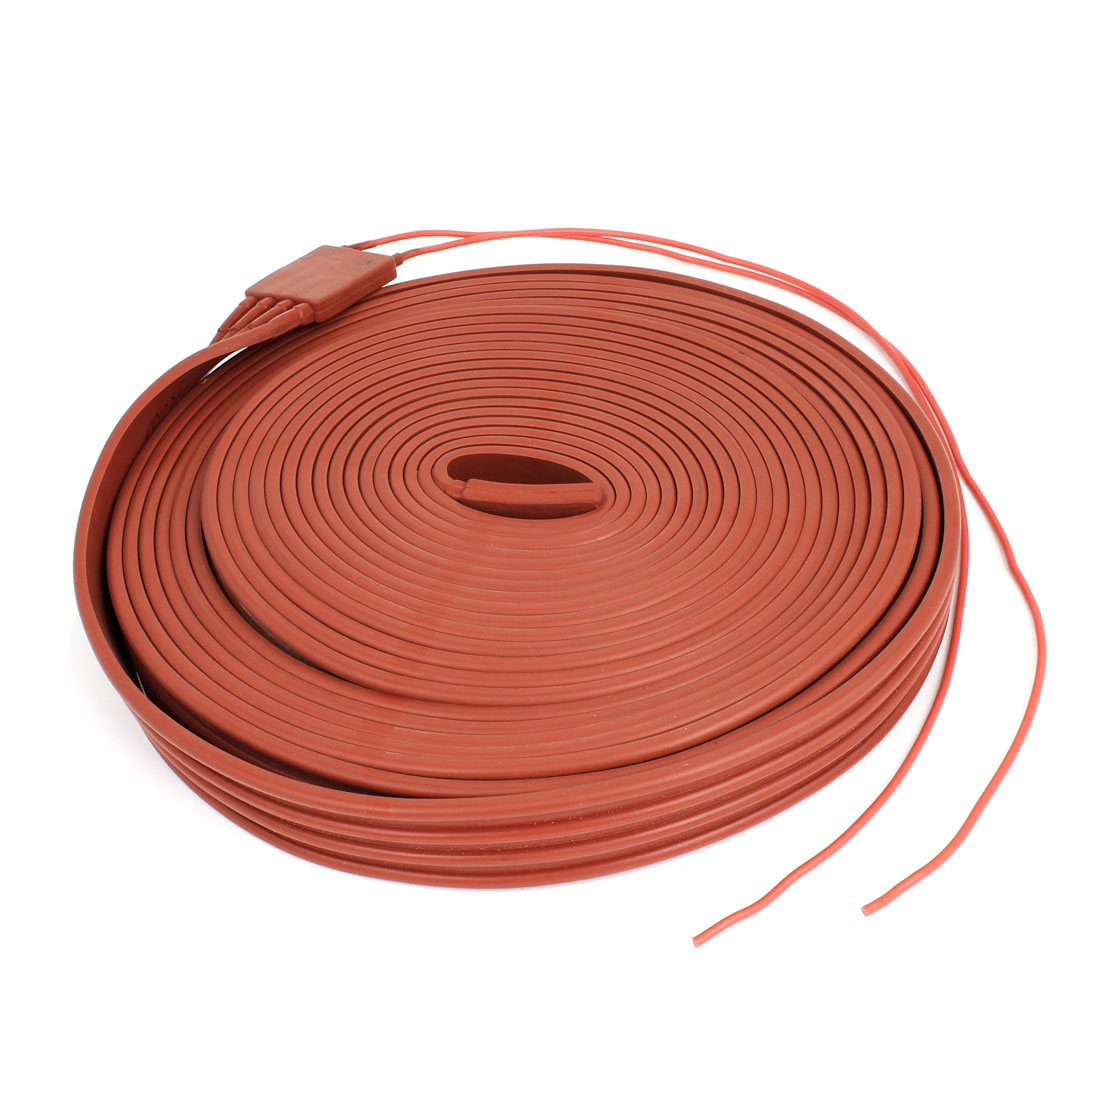 Red Flexible Silicone Waterproof Heater Strip Band 30mm Width 10M Long 60V